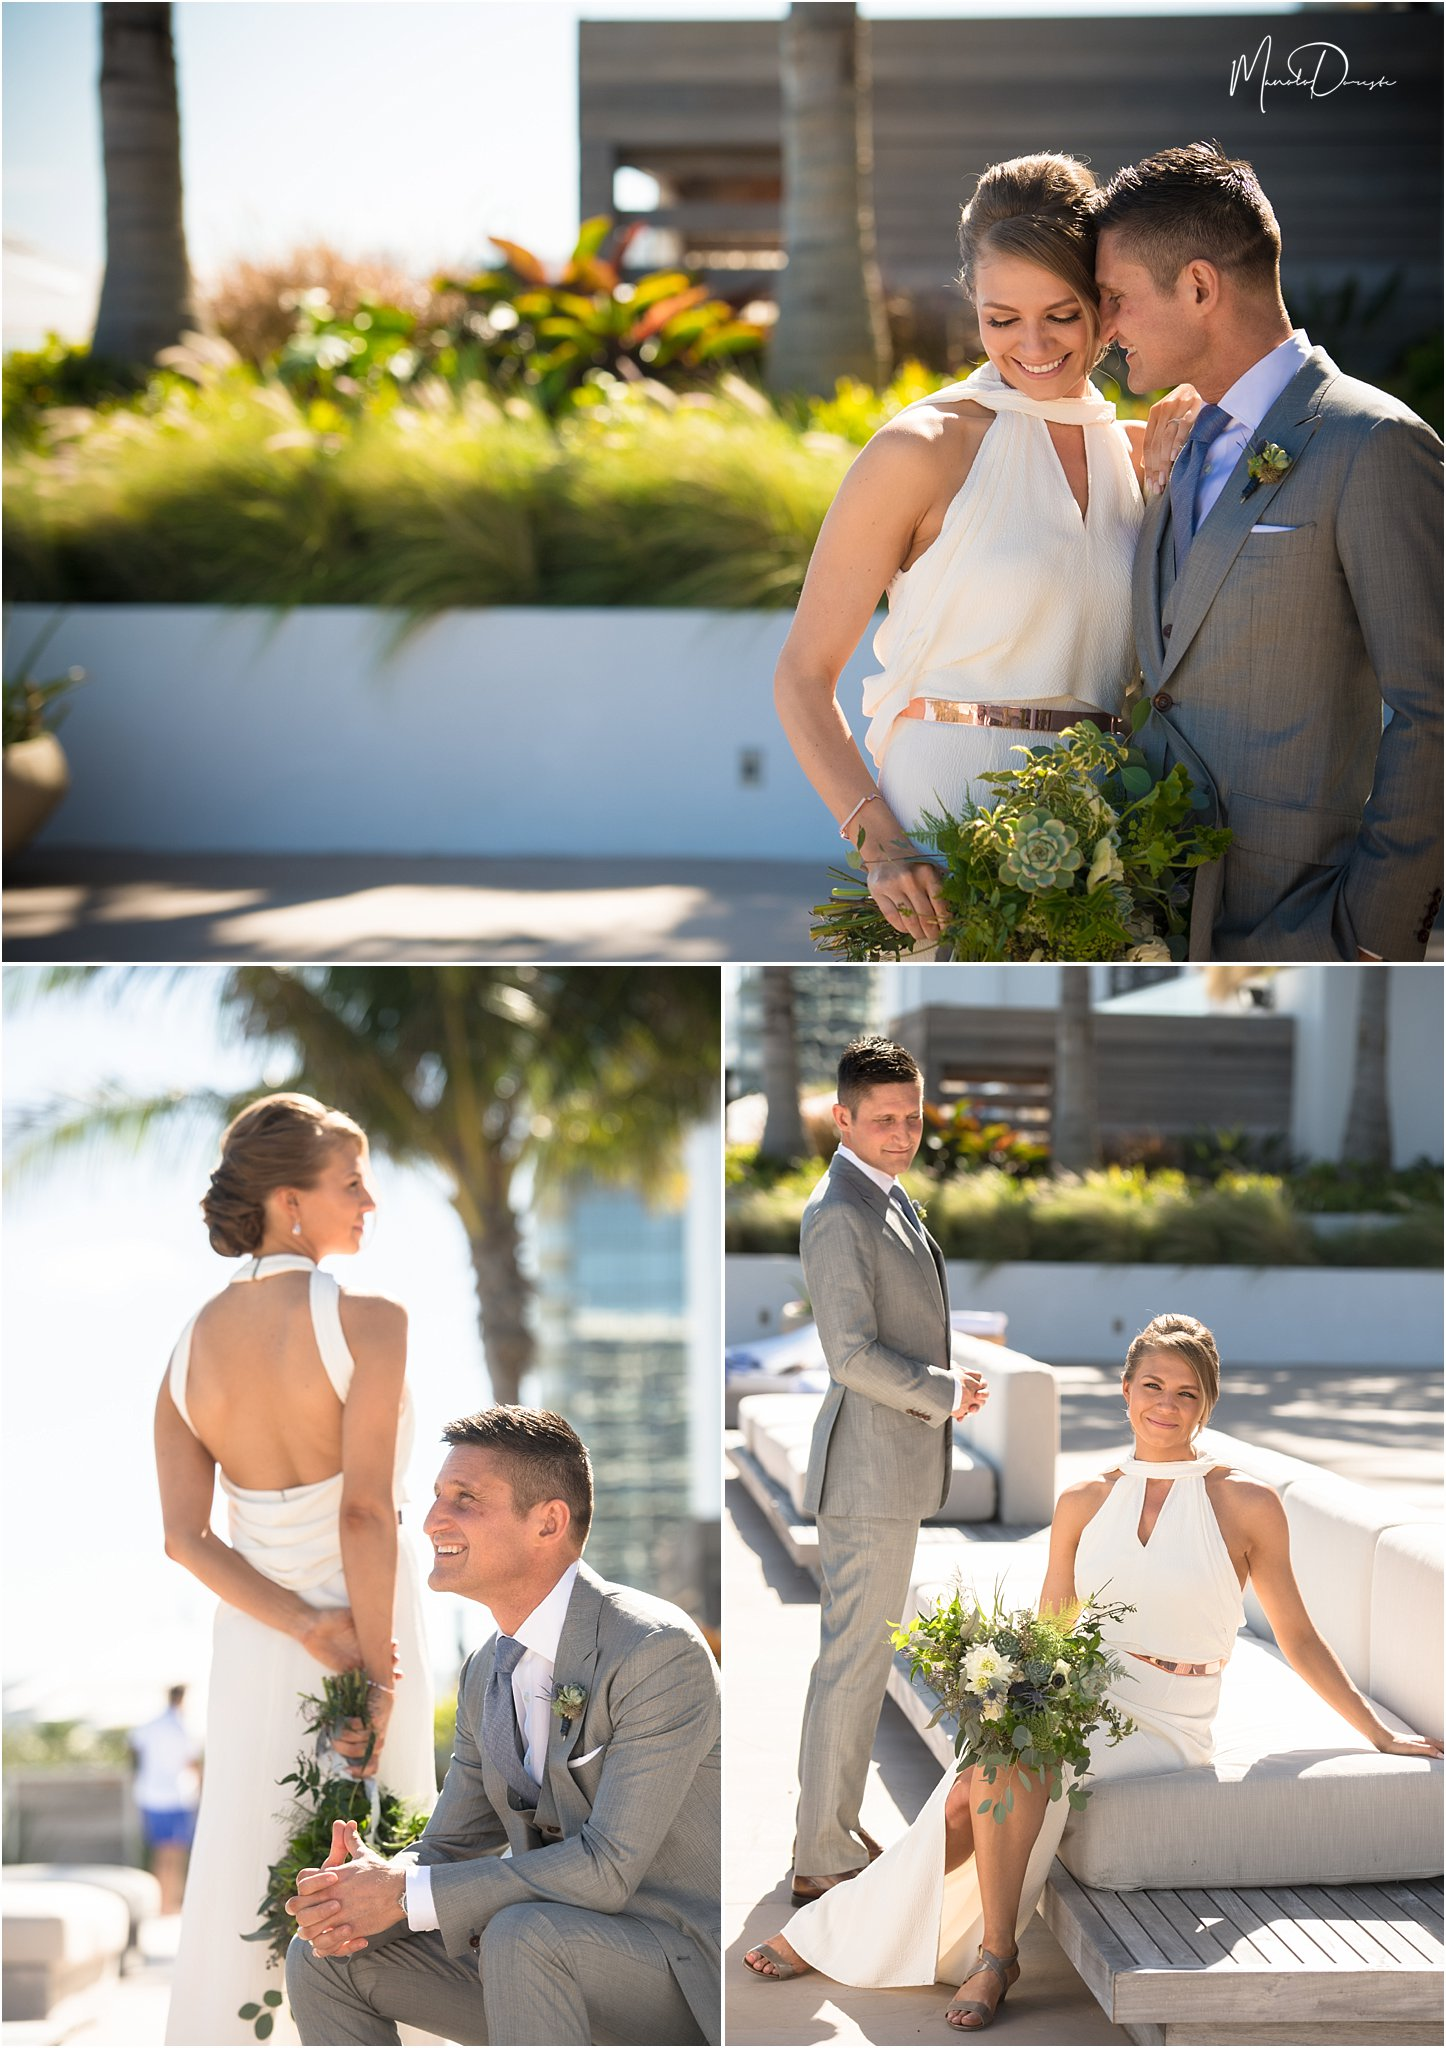 00912_ManoloDoreste_InFocusStudios_Wedding_Family_Photography_Miami_MiamiPhotographer.jpg